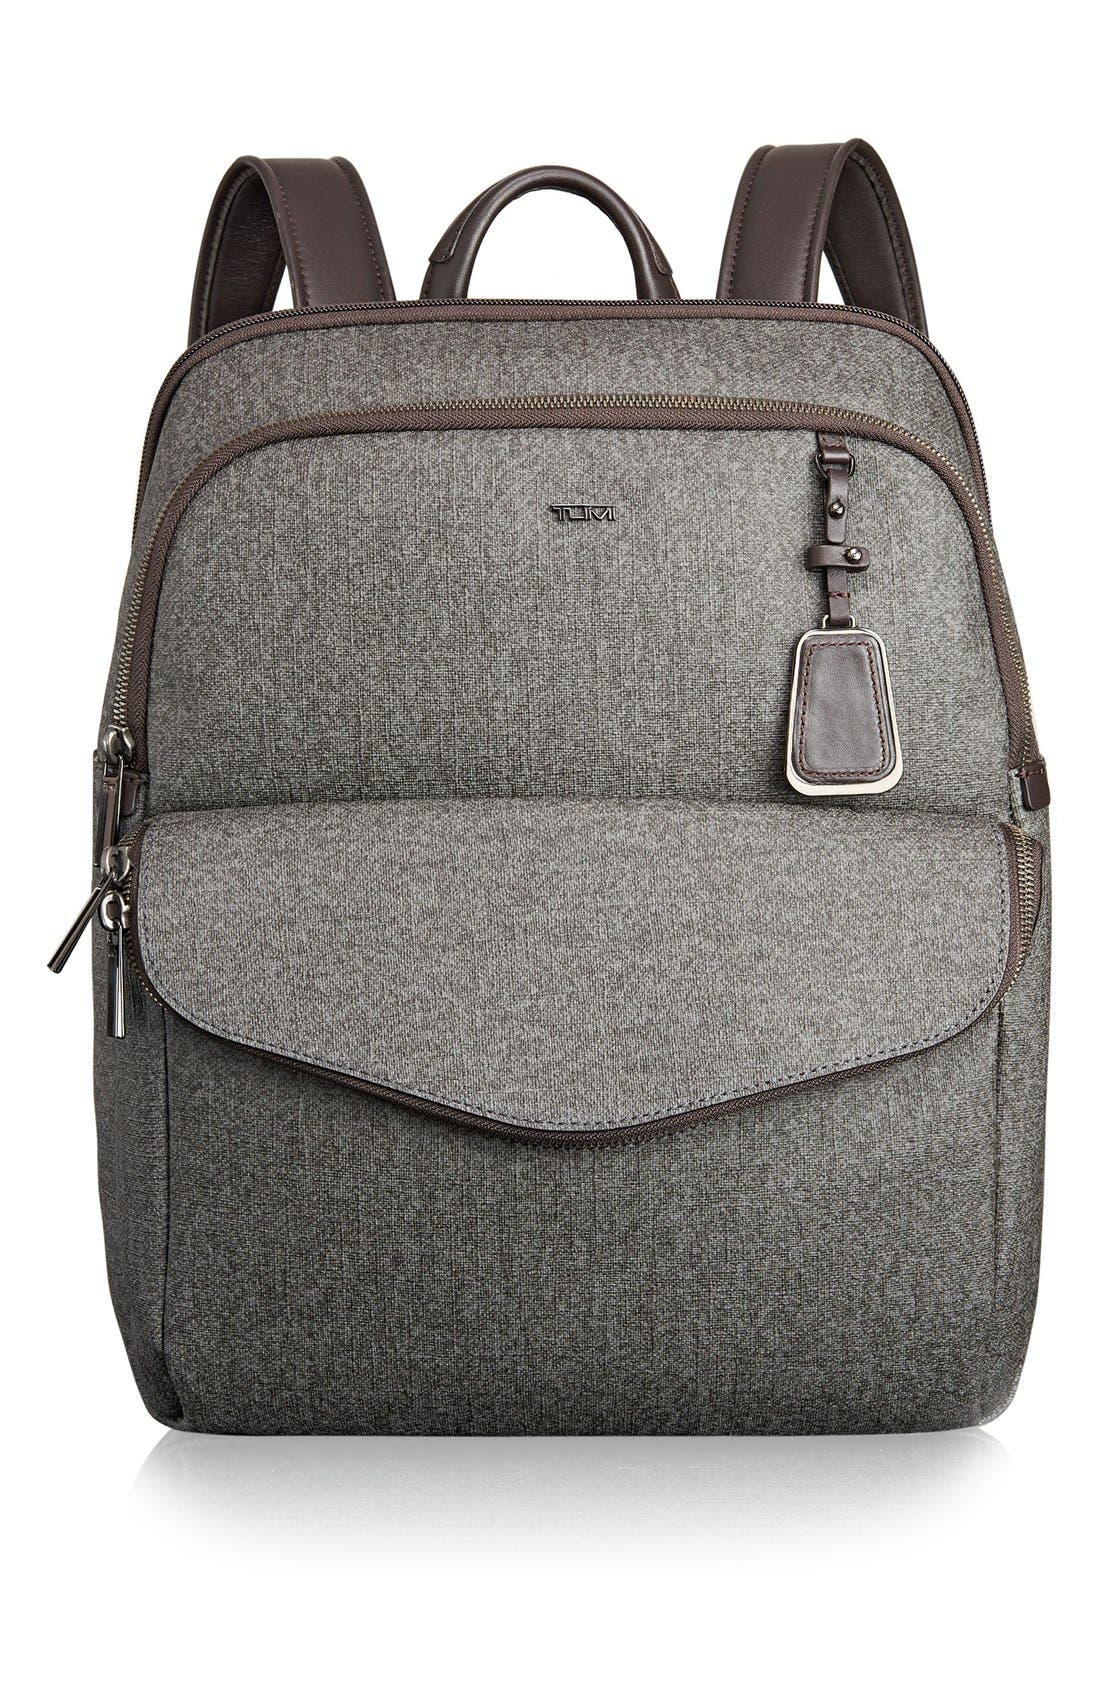 Alternate Image 1 Selected - Tumi 'Sinclair Harlow' Coated Canvas Laptop Backpack